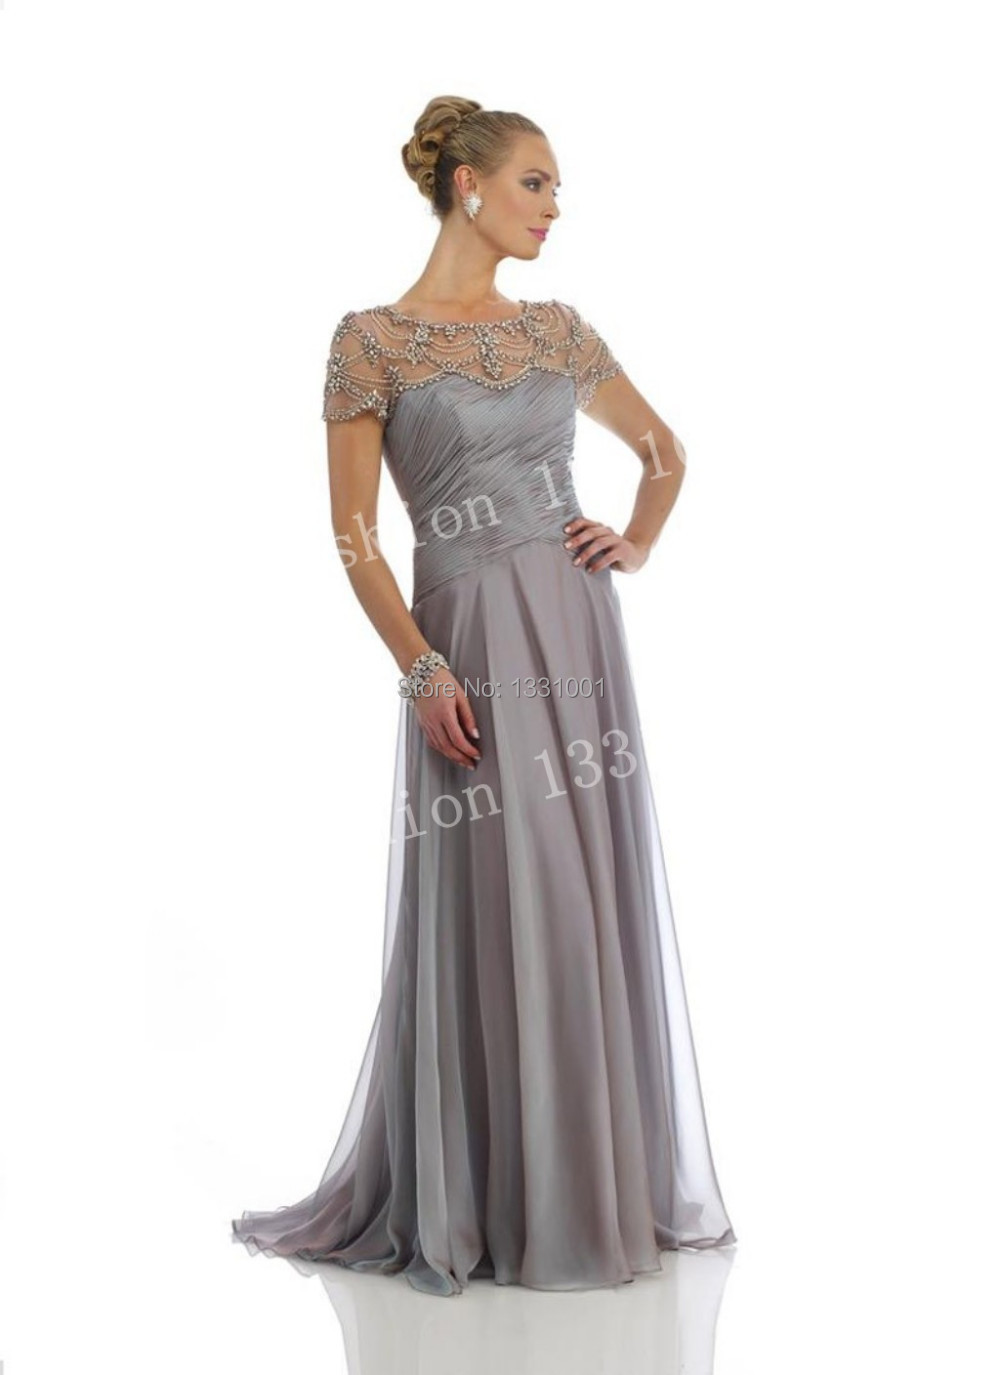 Find great deals on eBay for dresses from china. Shop with confidence.